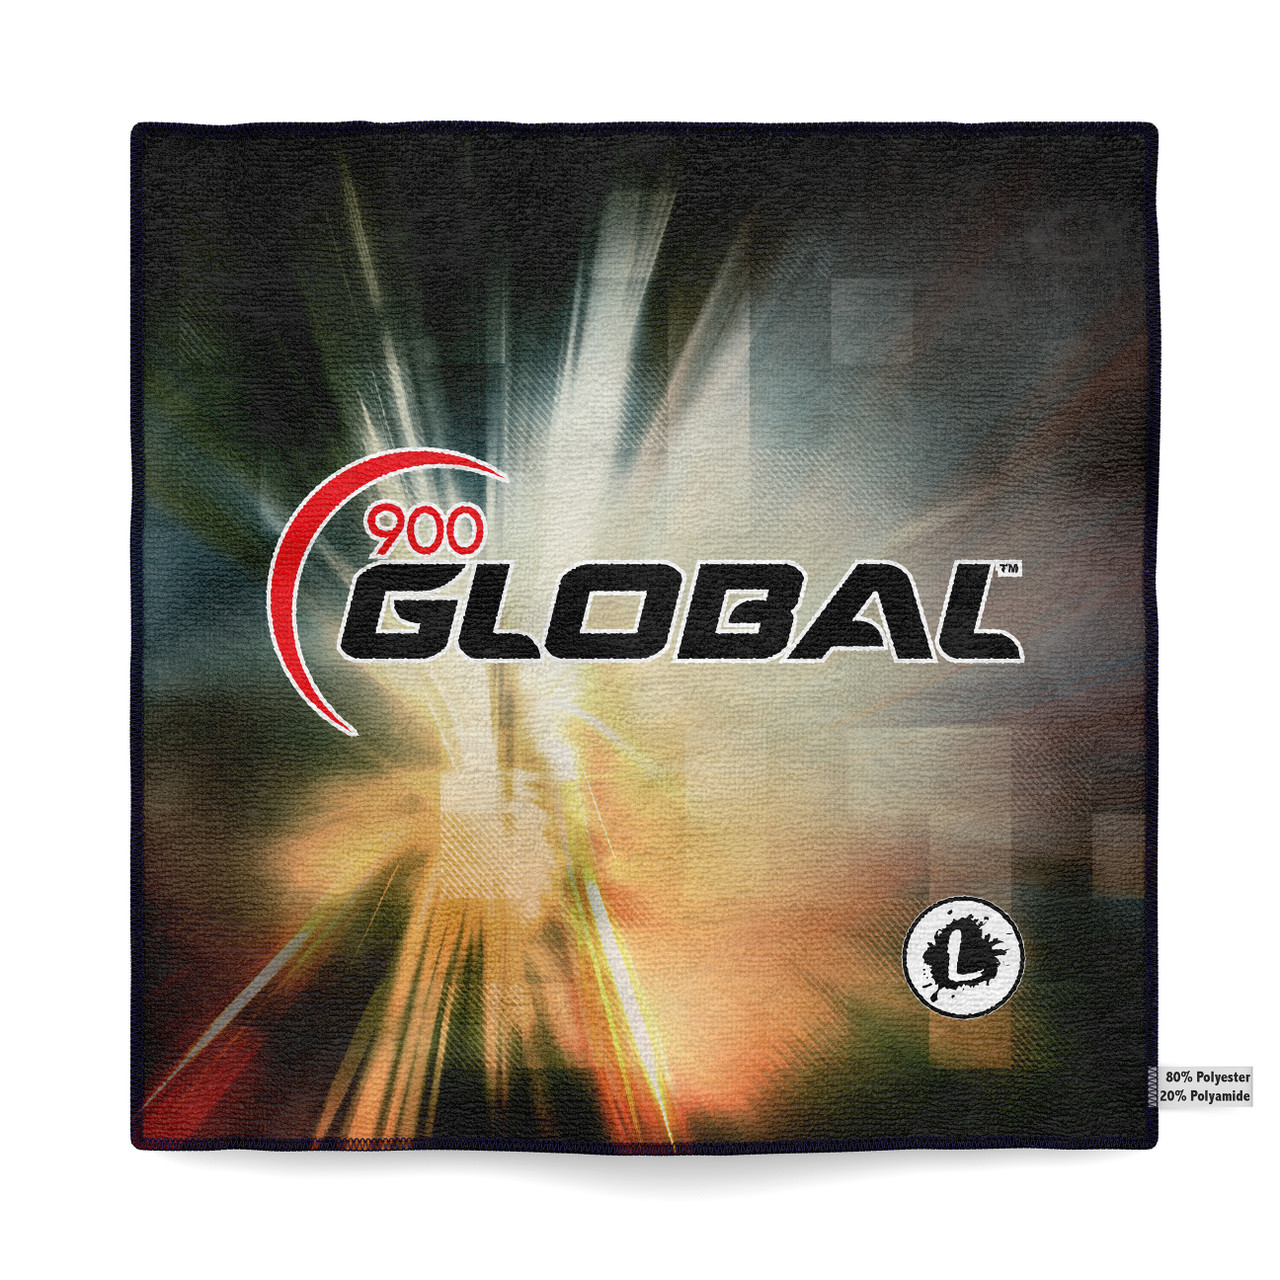 900 Global DS Towel Style 0300